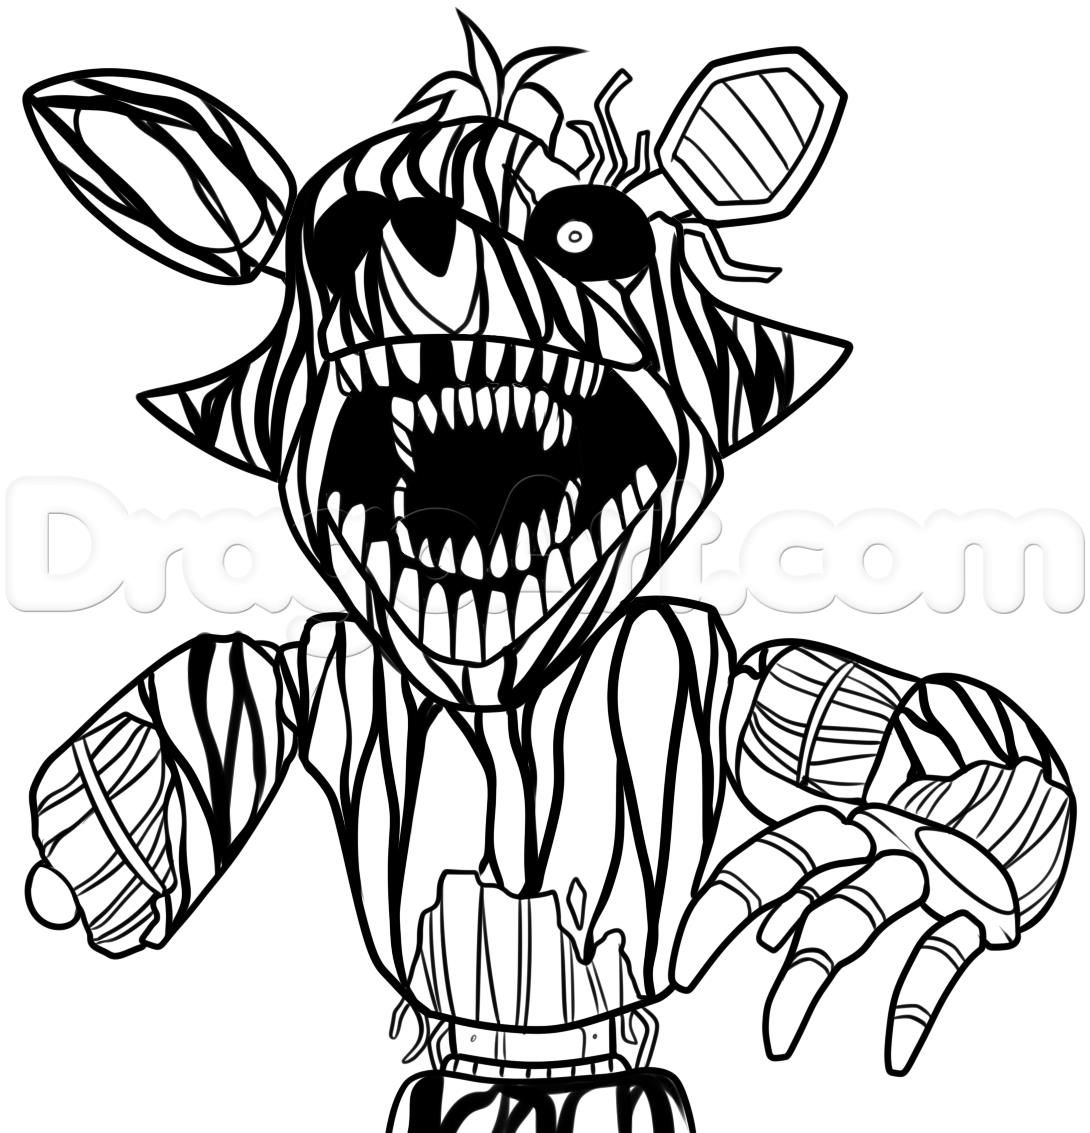 Five Nights At Freddys 4 Coloring Pages Fnaf Coloring Pages